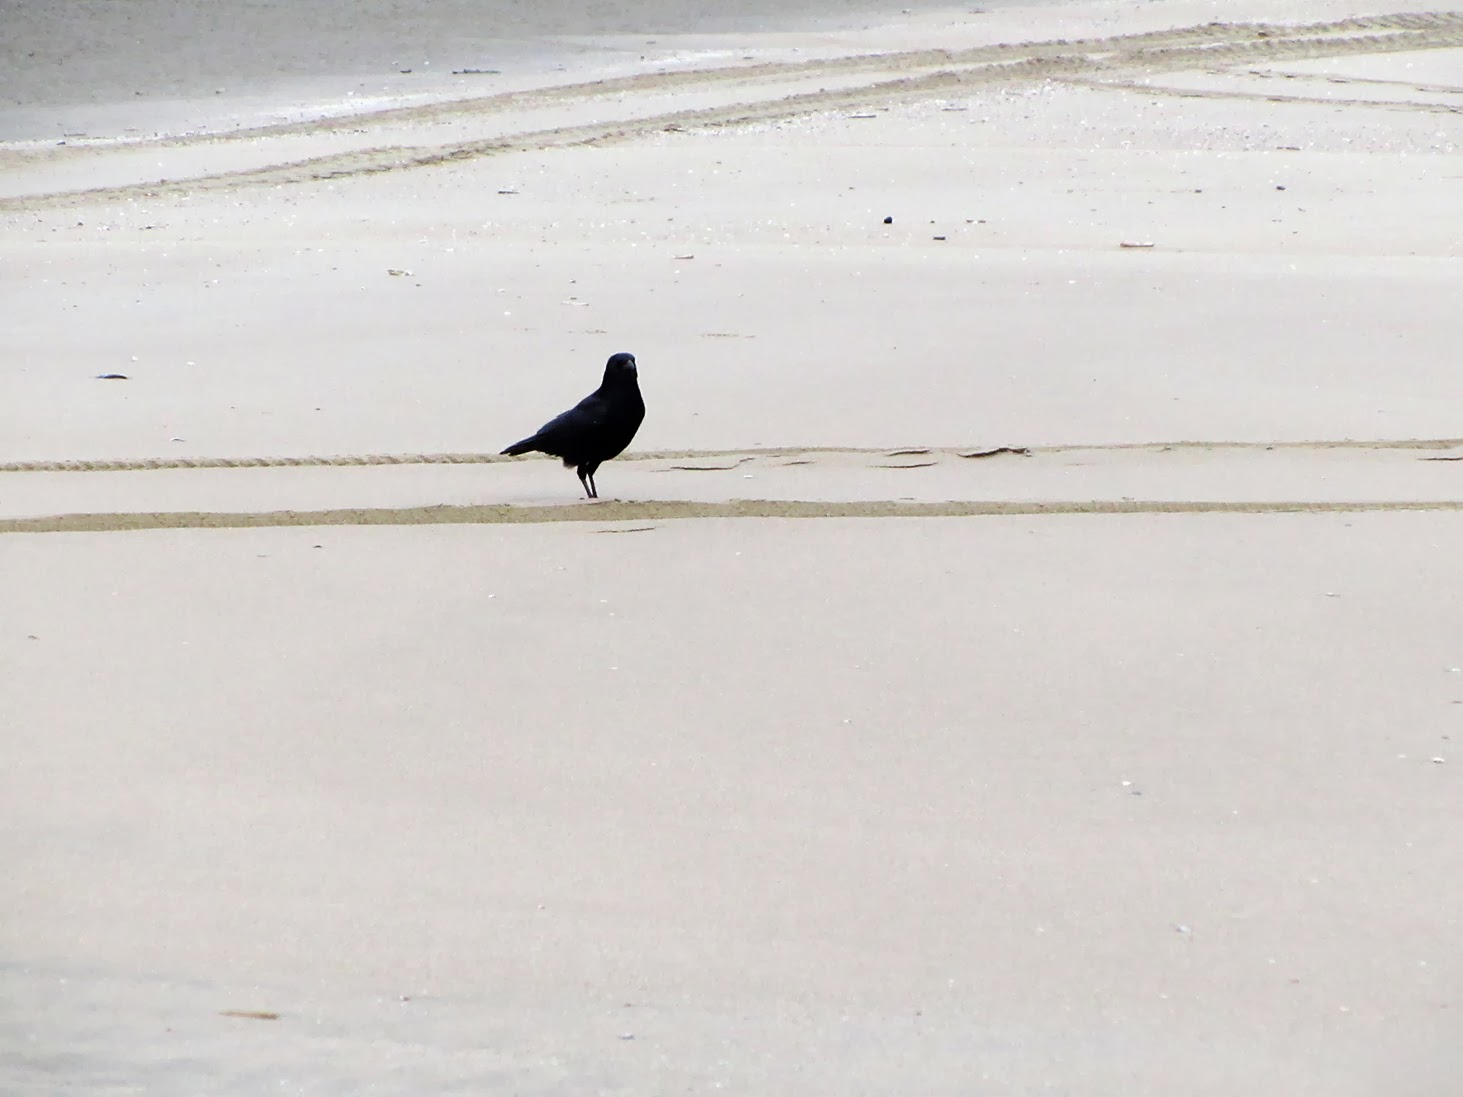 black crow on the beach